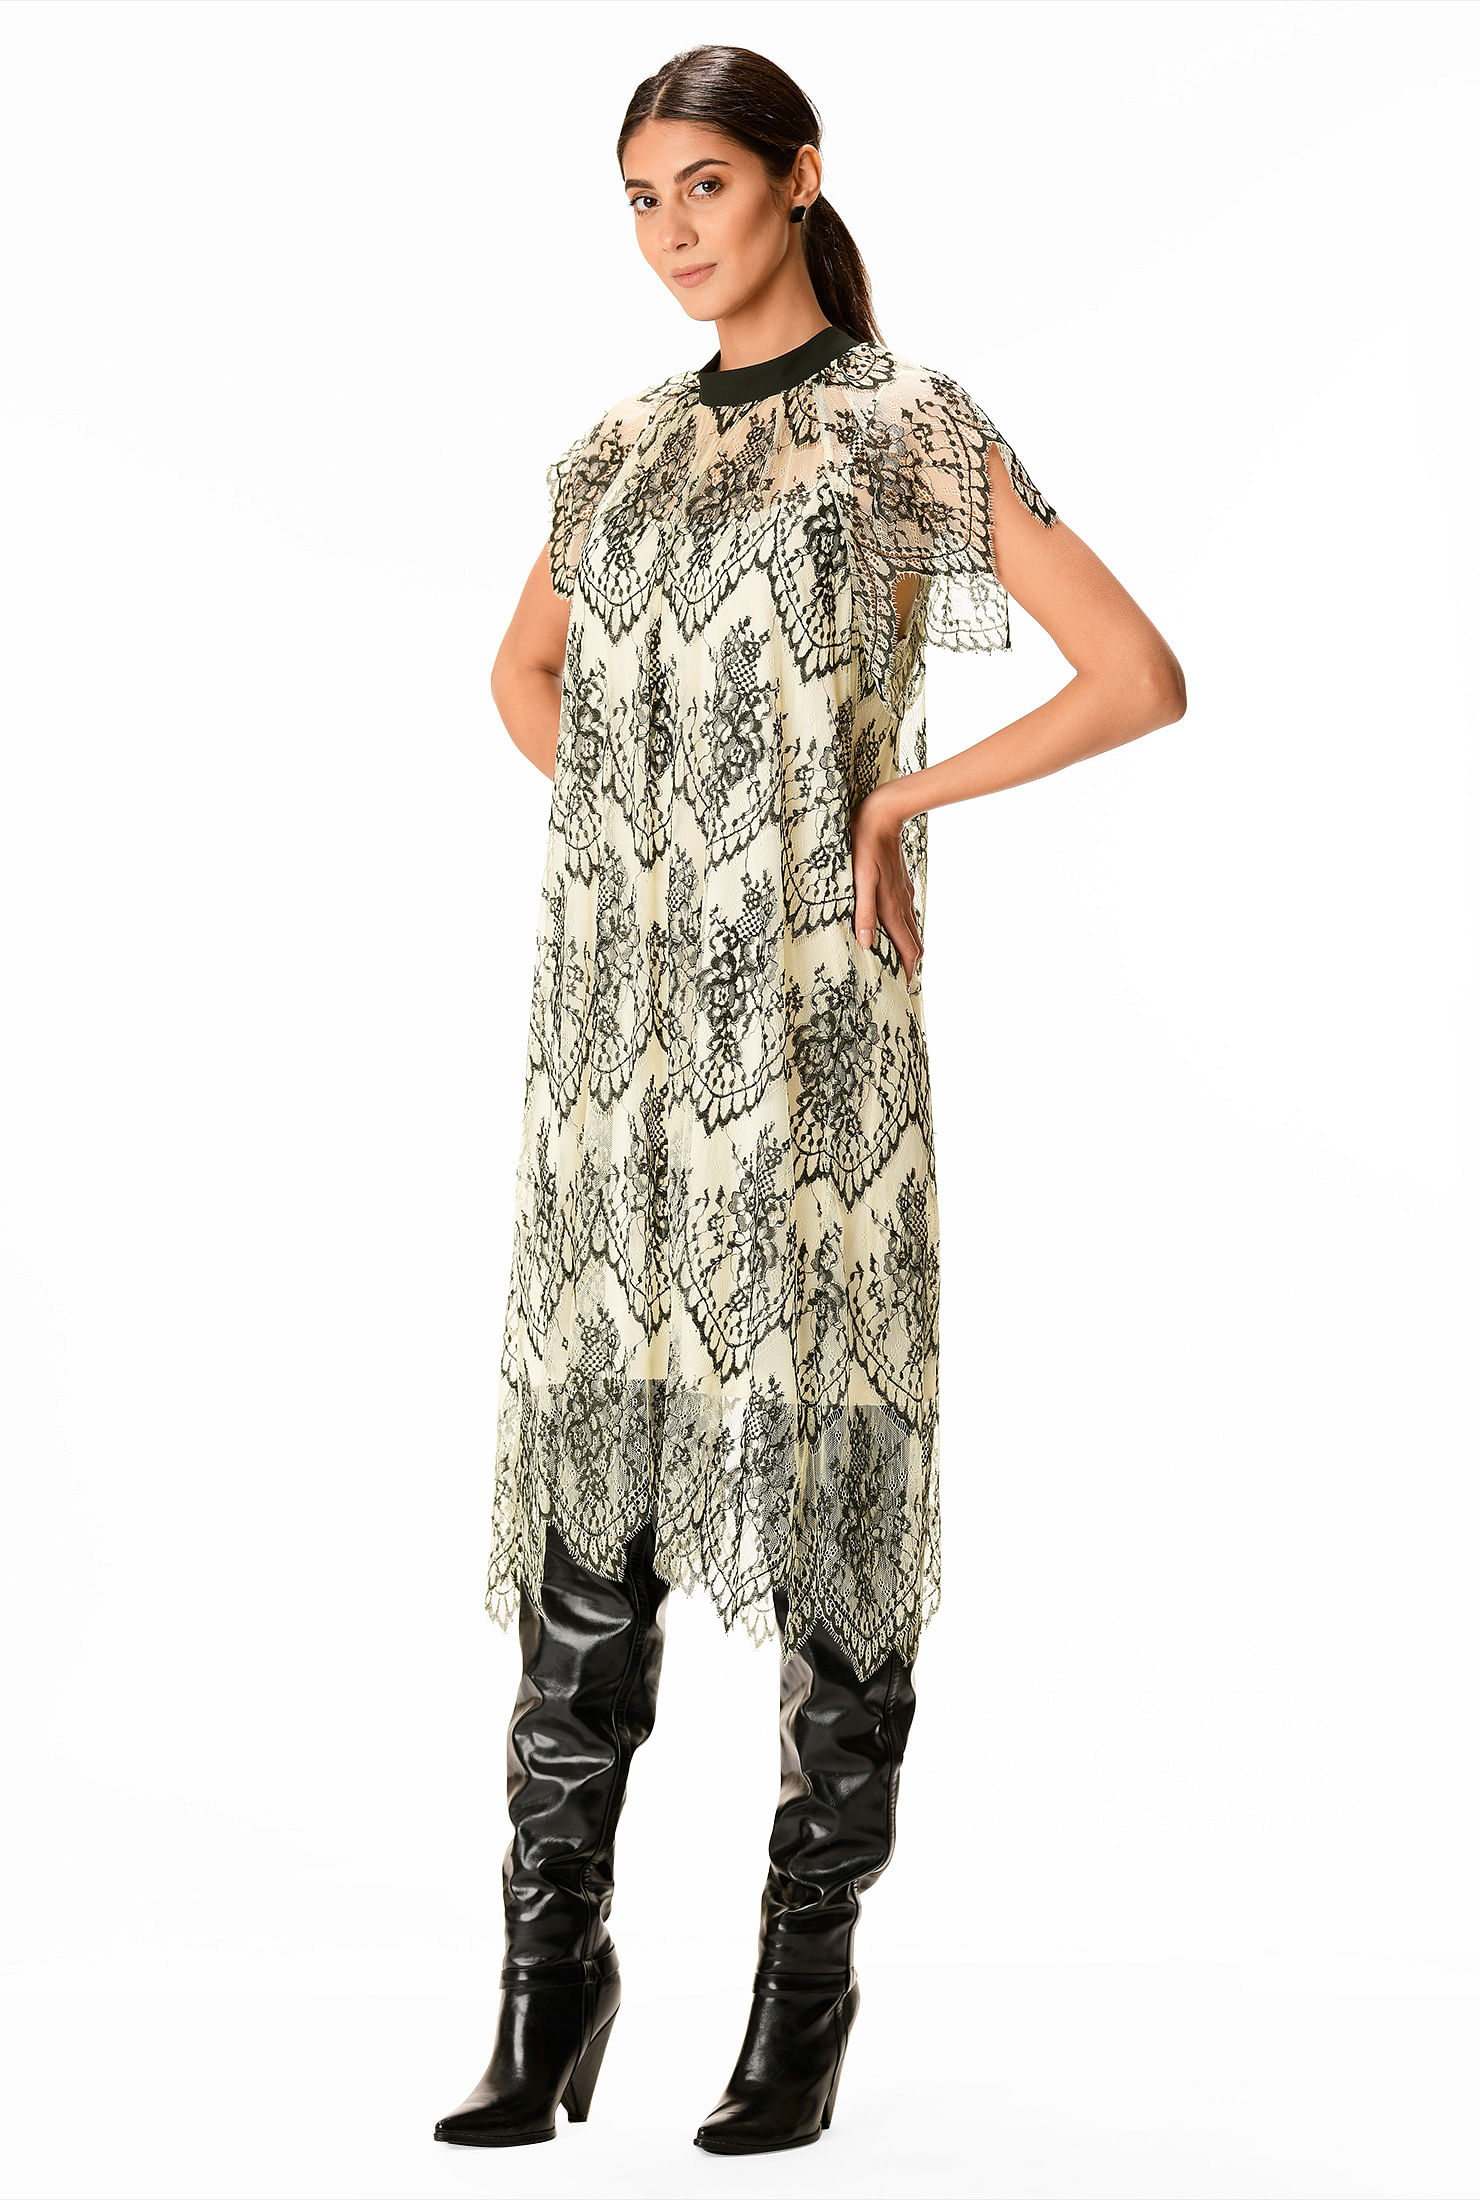 Charleston Dress: Fringe Flapper Dress High-low hem floral lace shift dress $114.95 AT vintagedancer.com